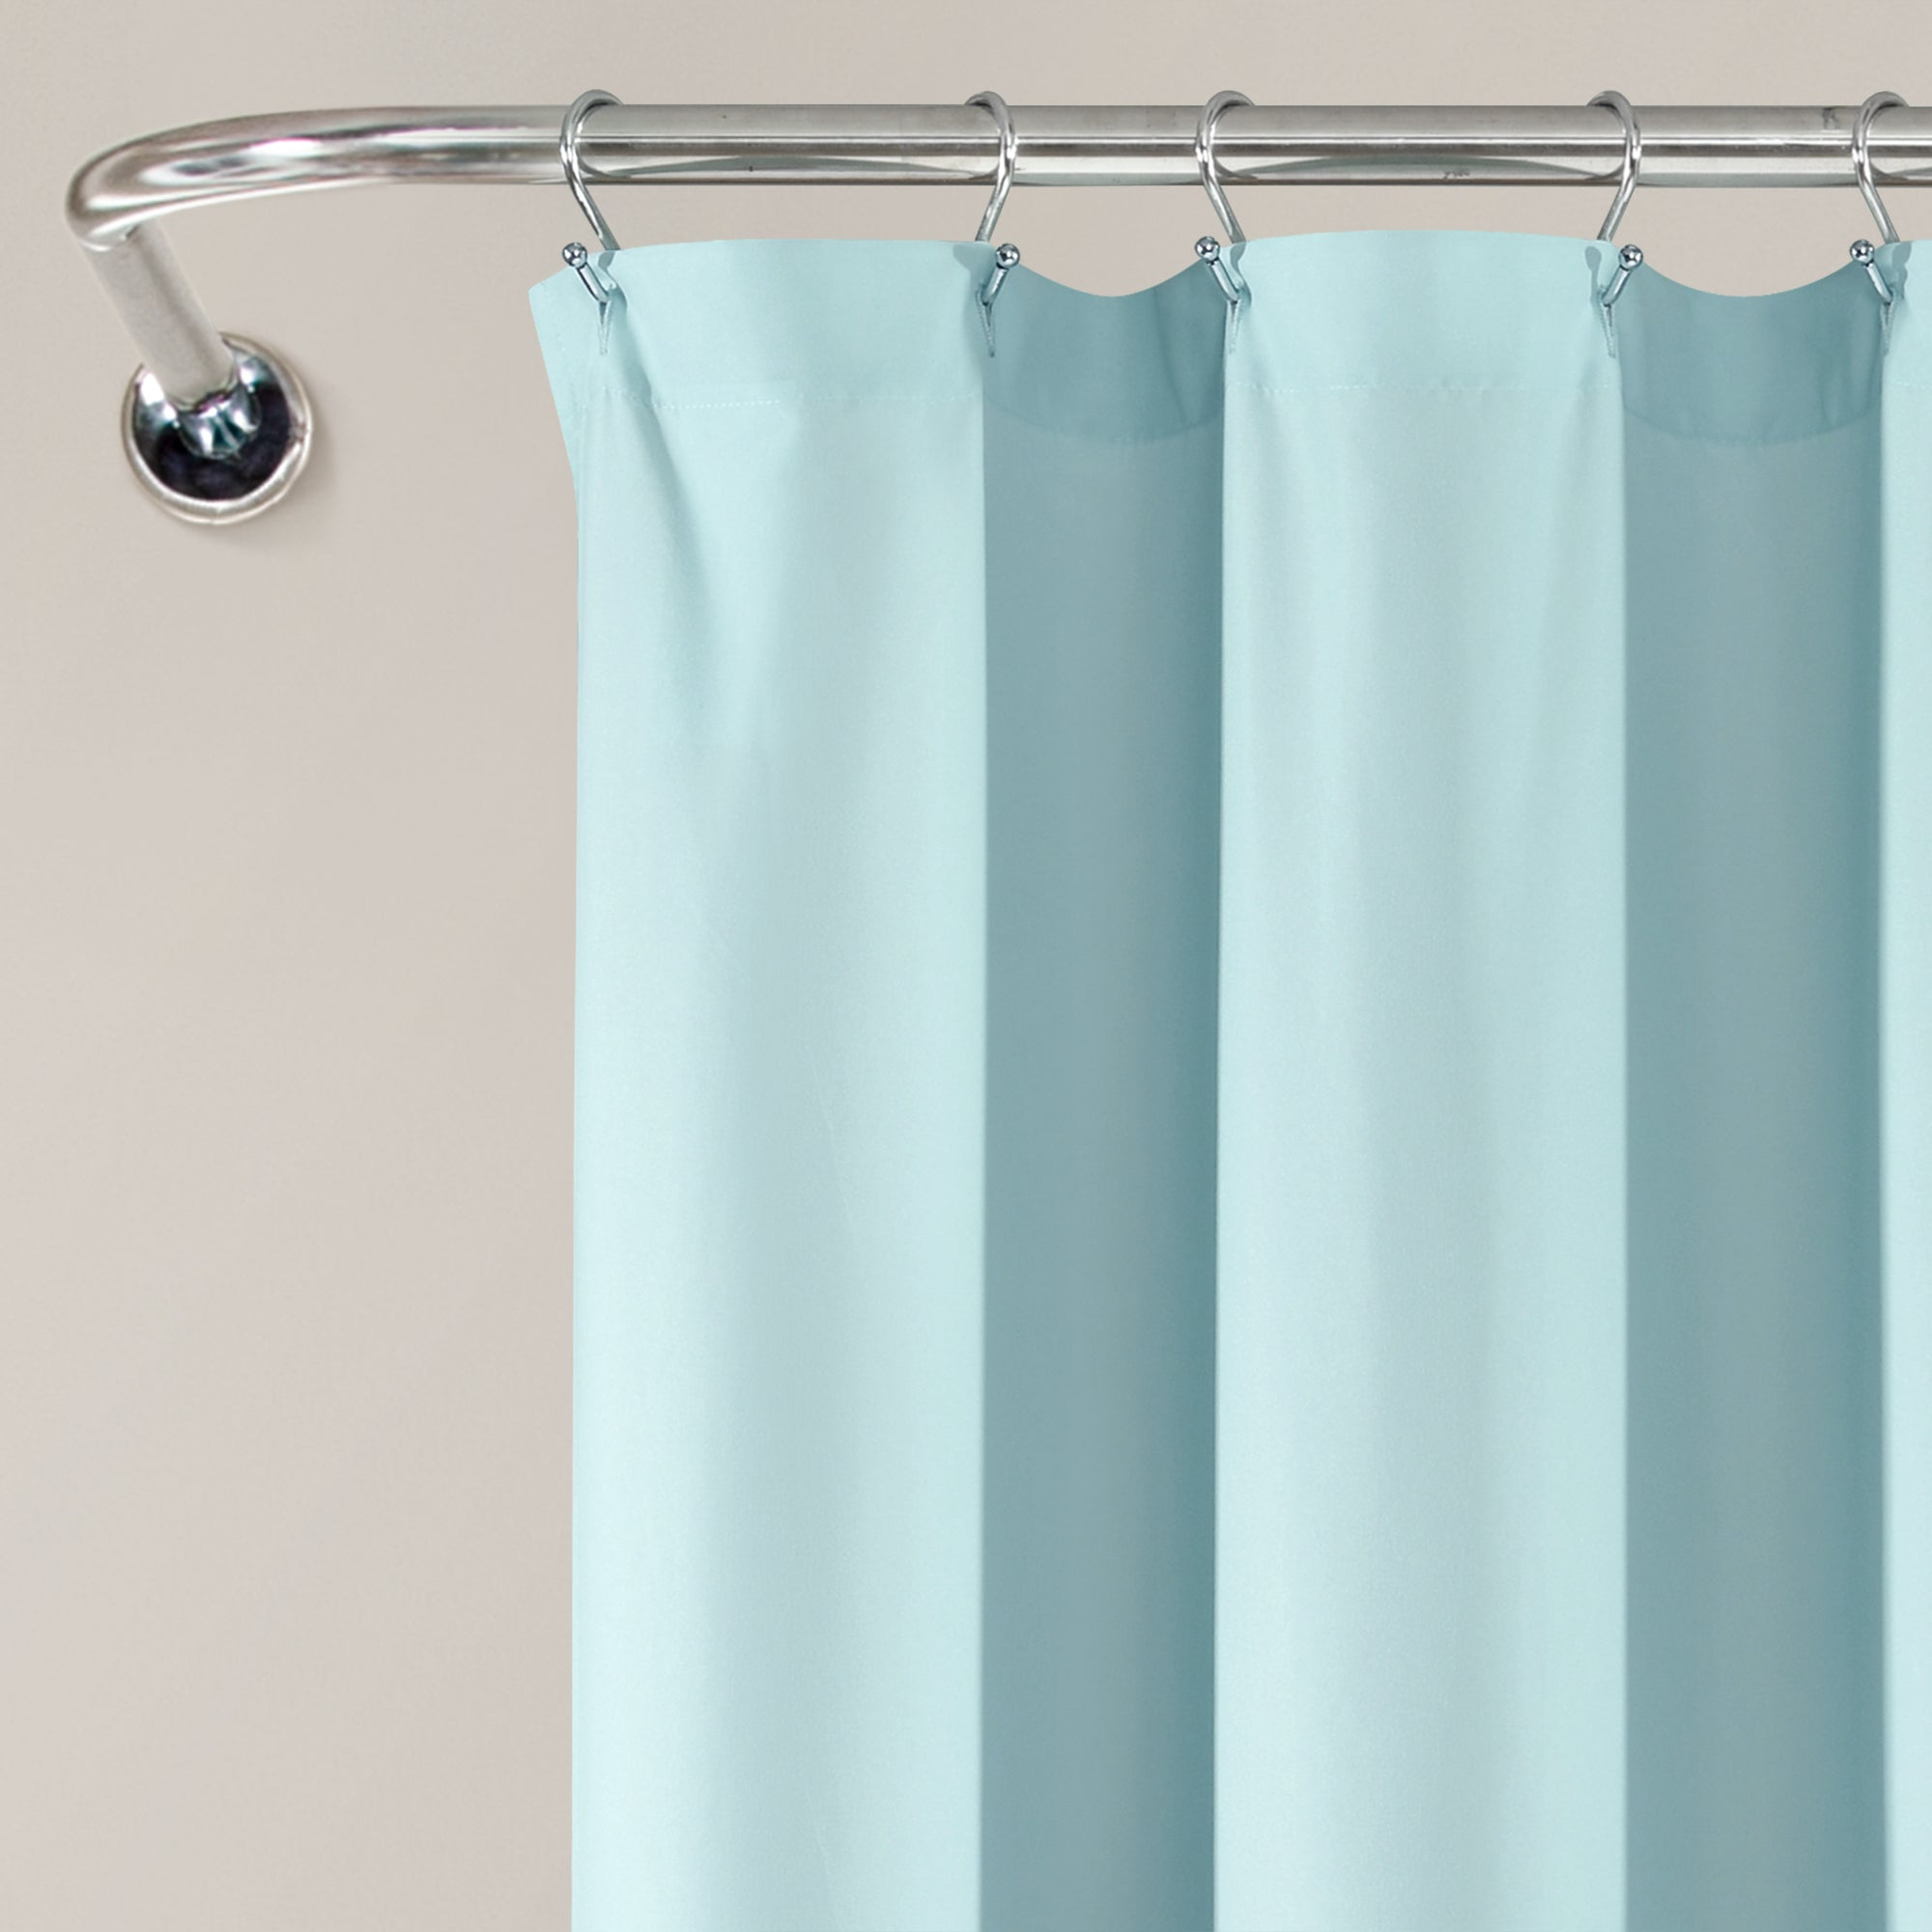 Tulle Skirt Colorblock Shower Curtain